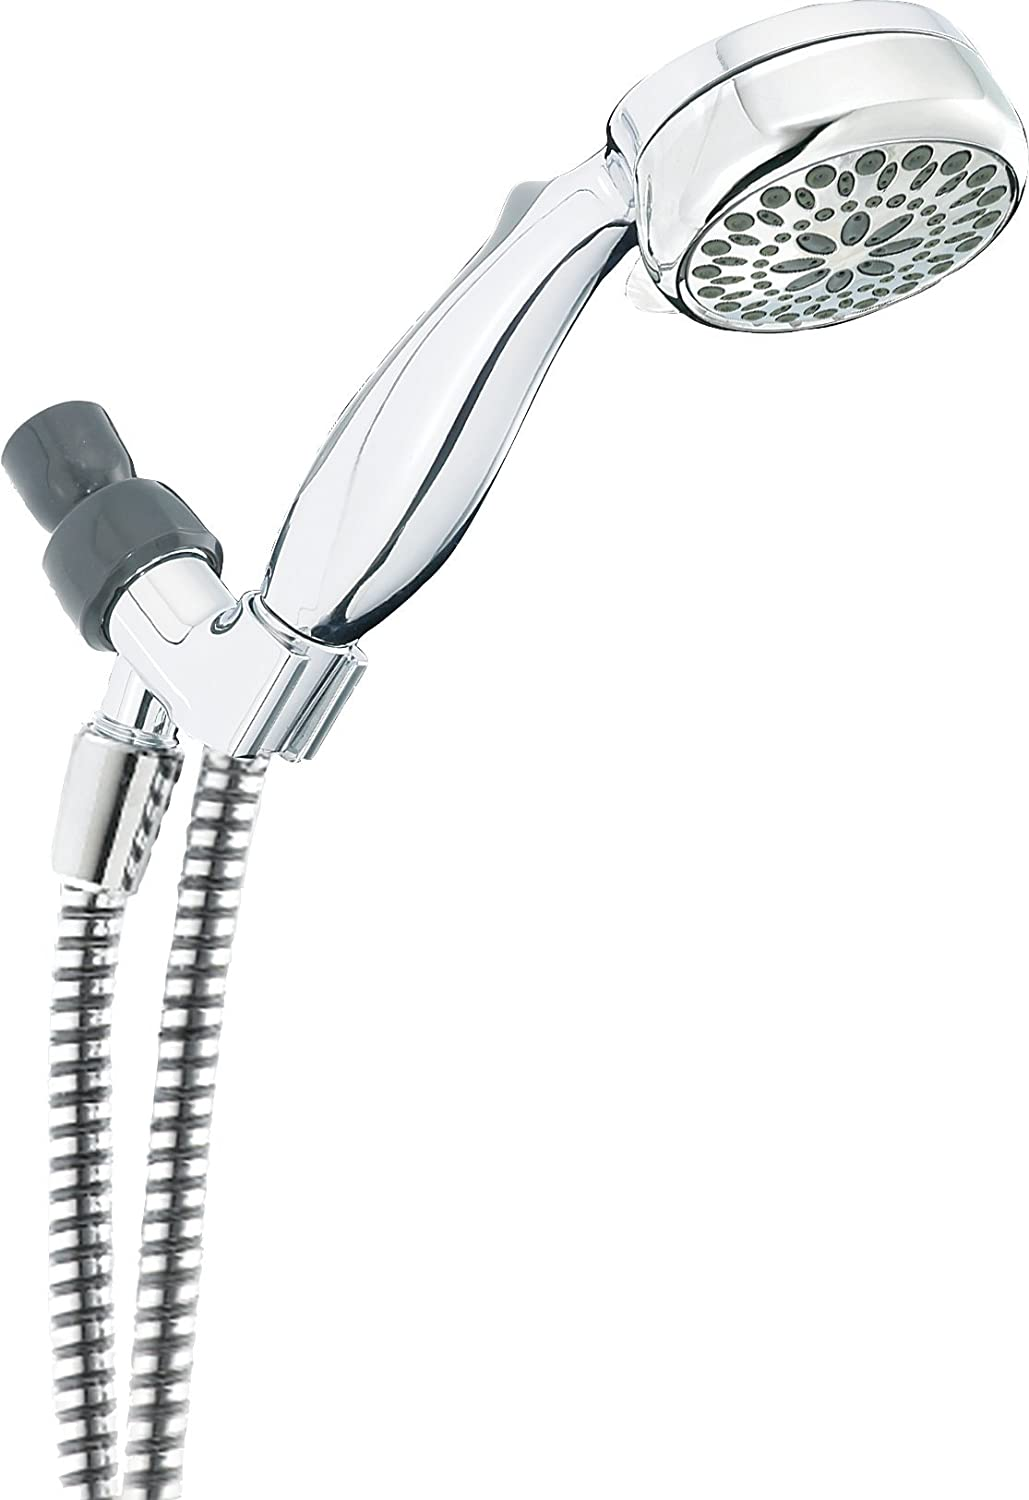 3.Delta Faucet 75701 Hand Held Shower Head